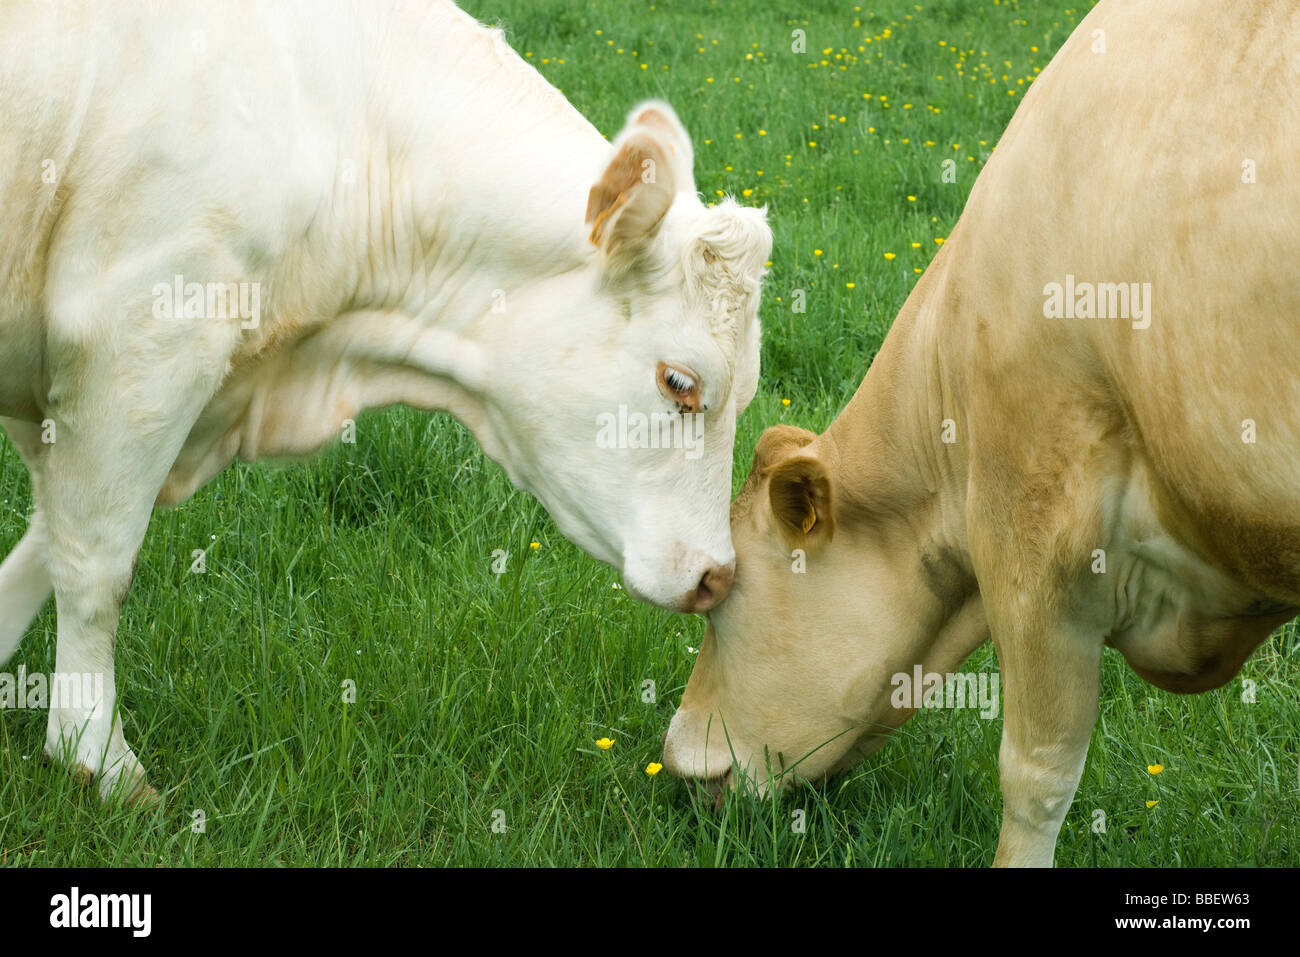 Two cows grazing in pasture, one nuzzling the other - Stock Image